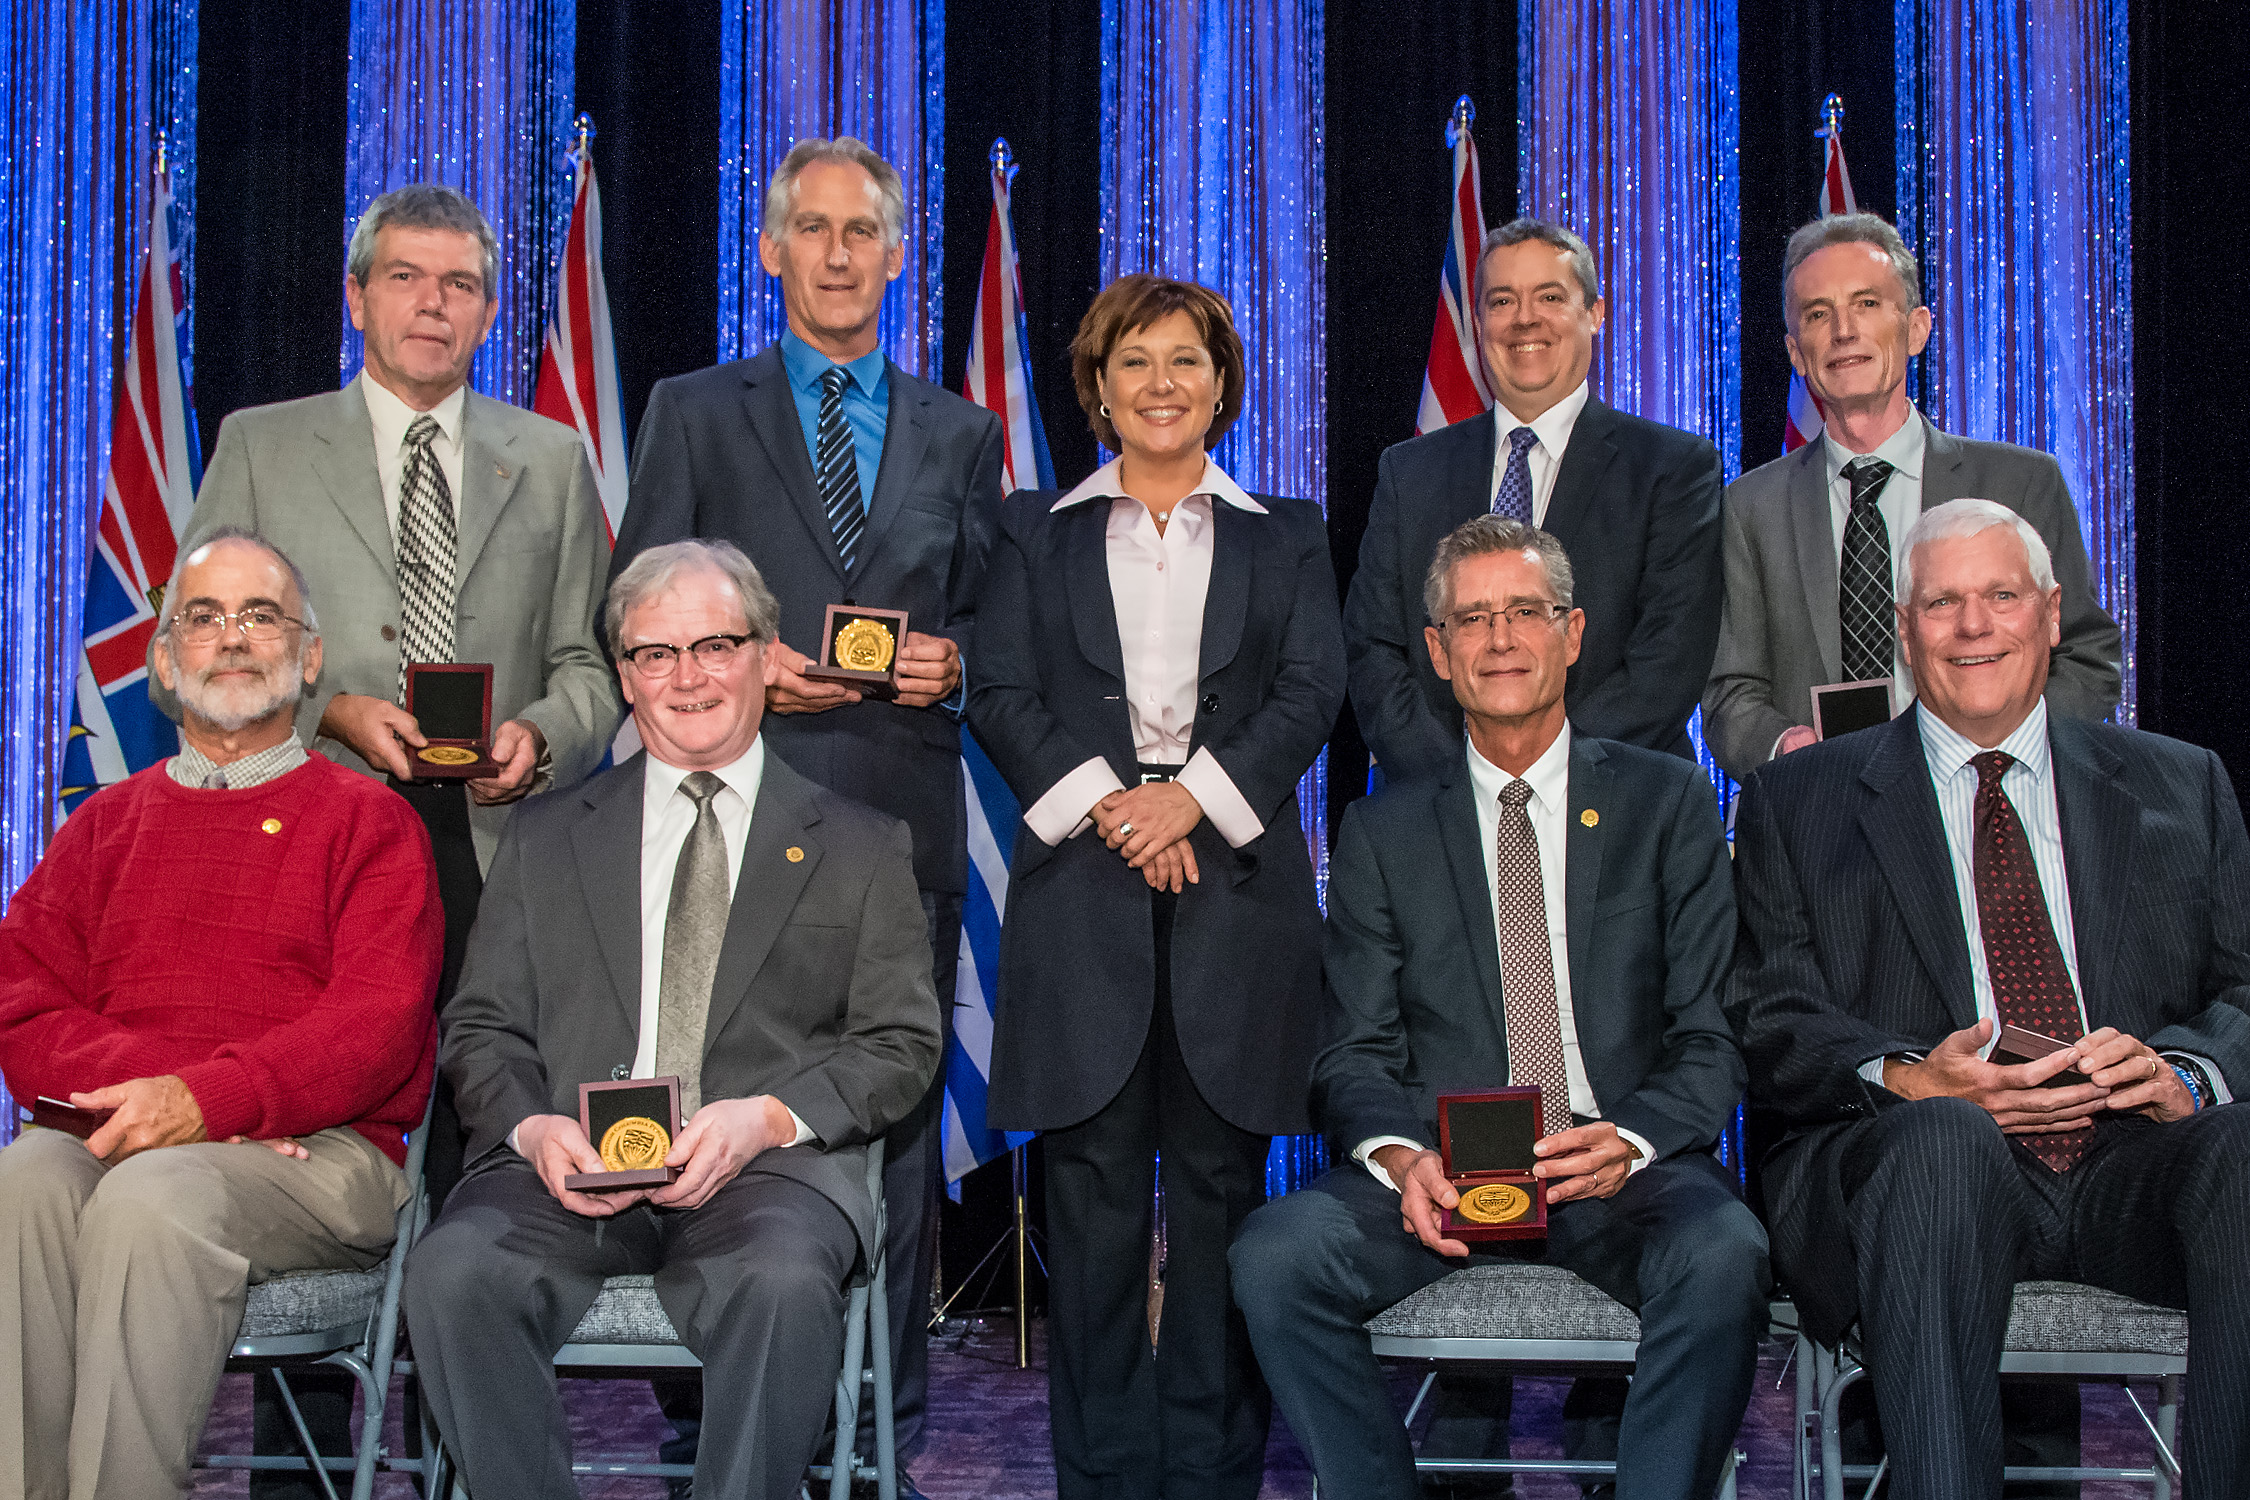 Premier Christy Clark celebrated the exceptional accomplishments of British Columbia's public service employees and unveiled a new form of recognition, the BC Public Service Hall of Excellence, at the Premier's Annual Innovation and Excellence Awards ceremony.